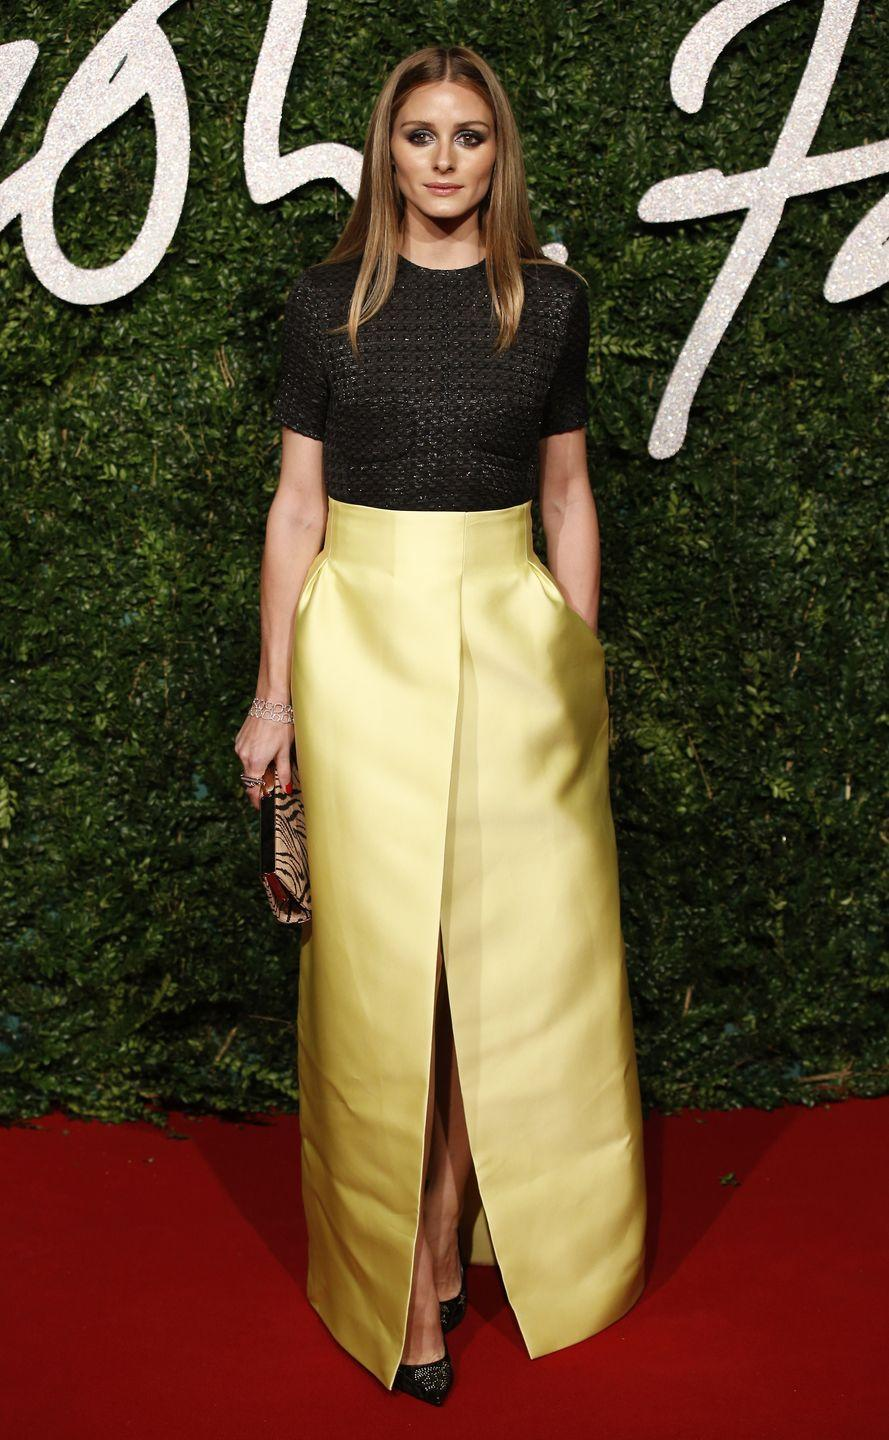 <p>In her pale-yellow Emilia Wickstead skirt and dark knit top, Olivia Palermo channeled the fairest princess of them all at the 2014 British Fashion Awards. </p>